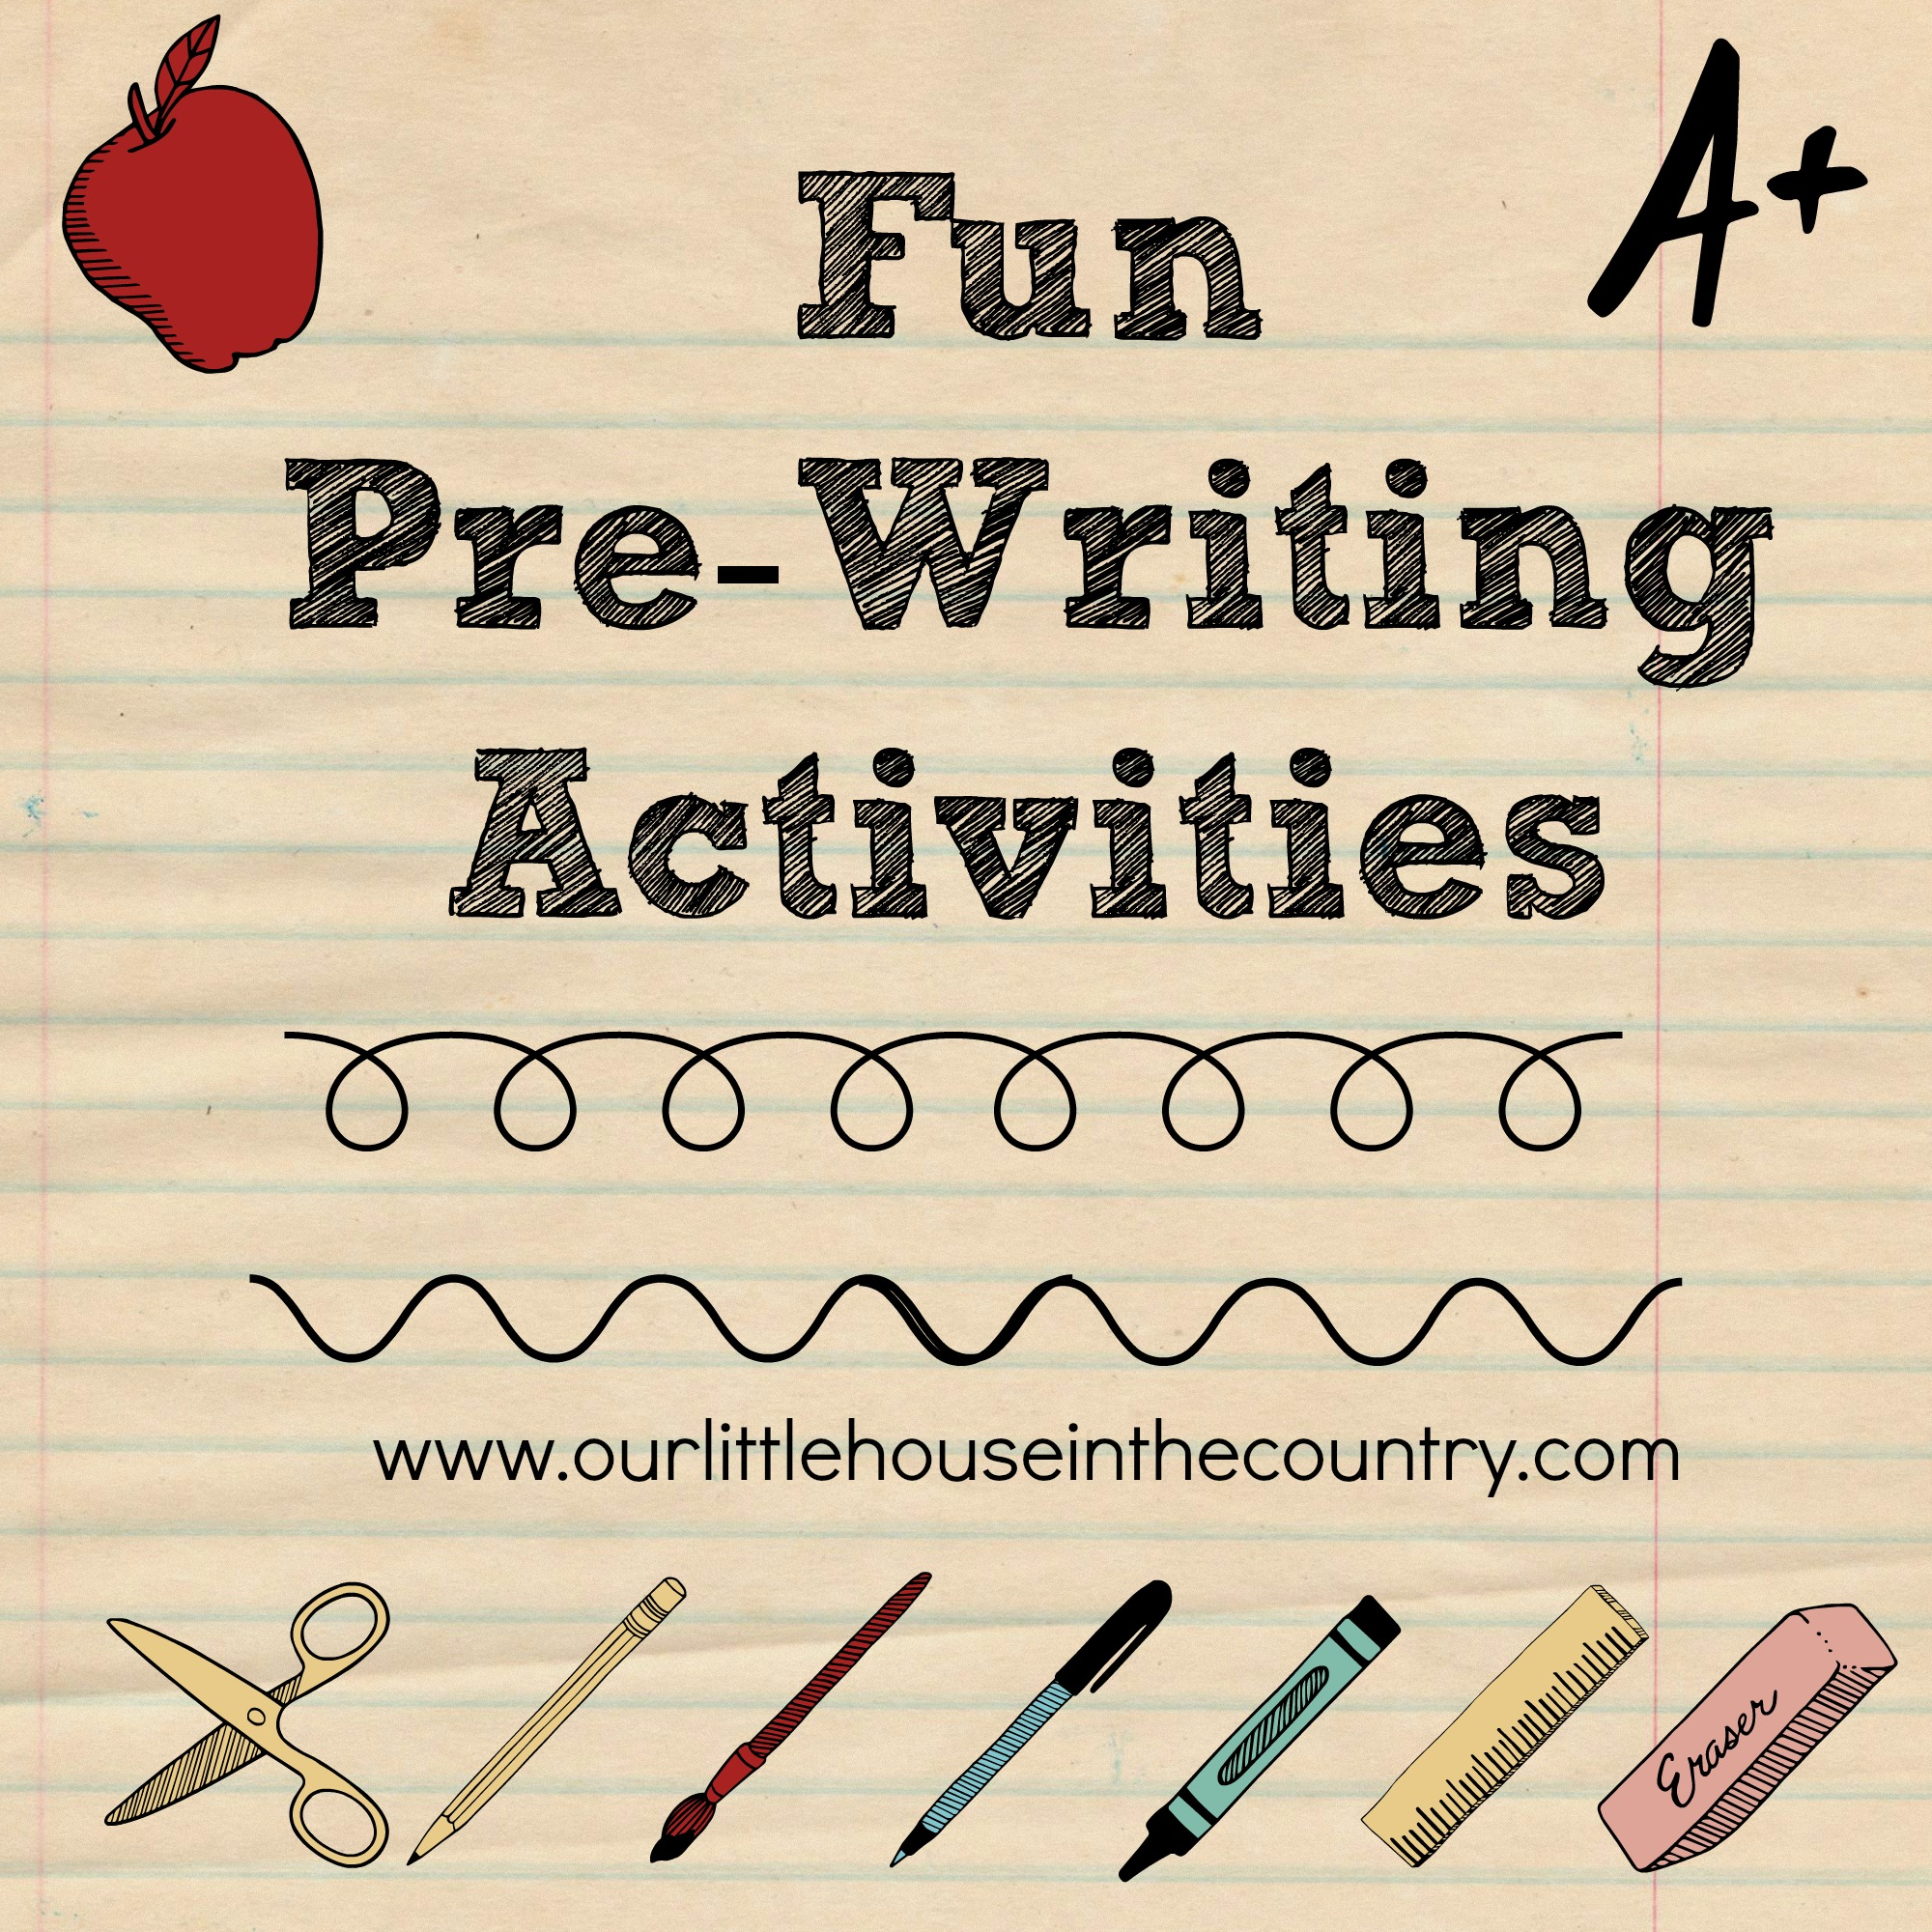 Five Pre-Writing Activities for Preschoolers